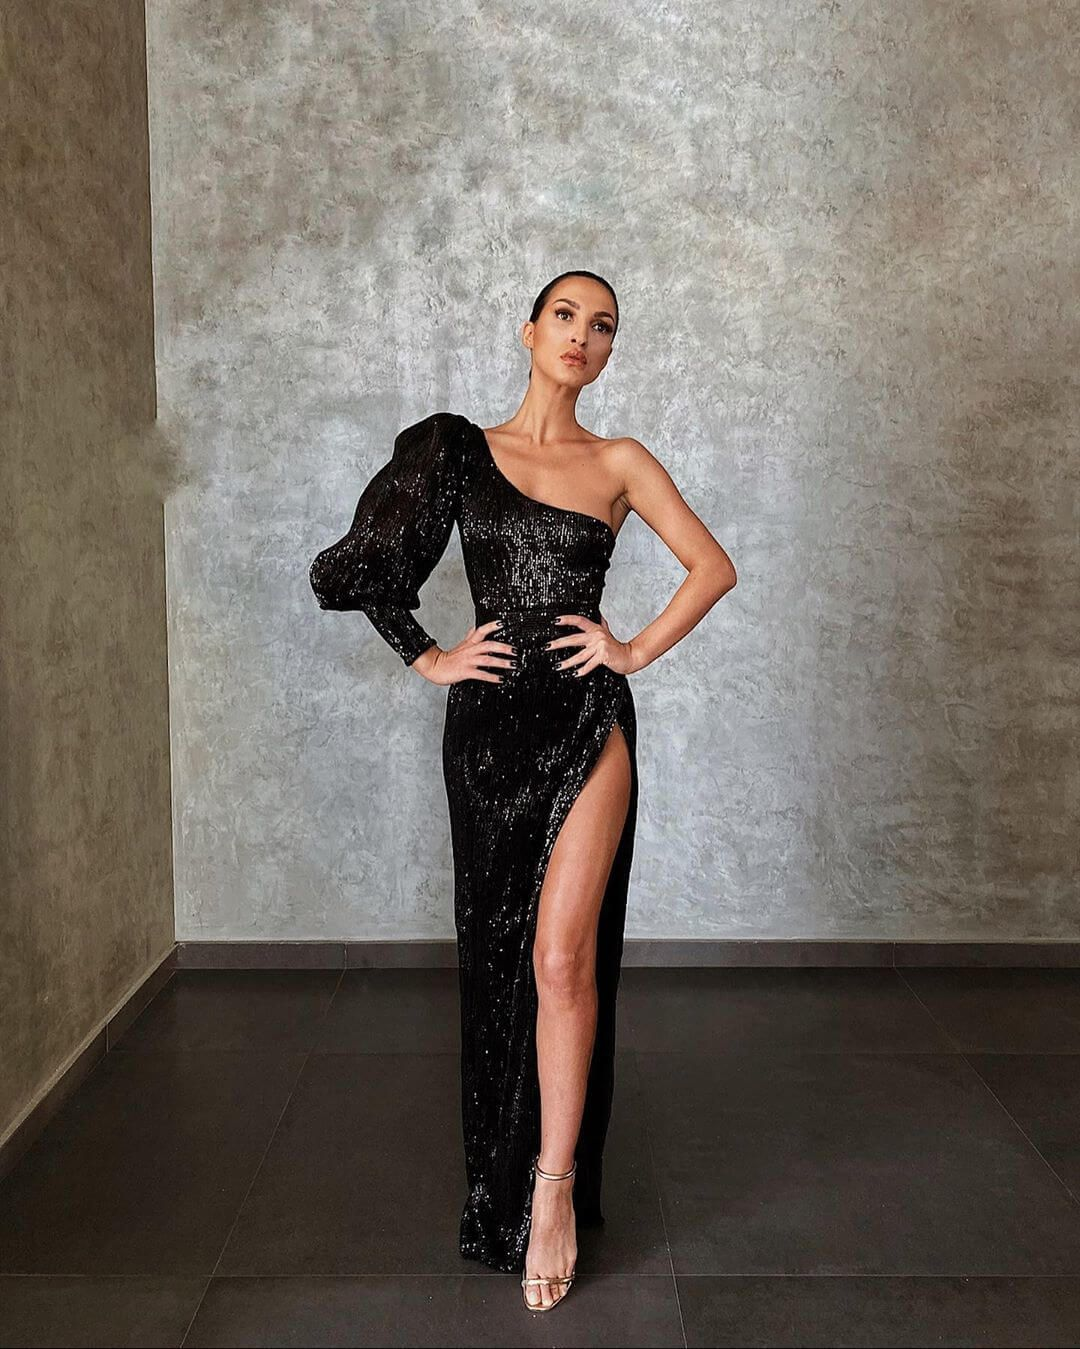 25 Perfete Fall Bridesmaid Dresses That Will Drop Jaws Perfete In 2020 Black Bridesmaid Dresses Fall Bridesmaid Dresses Black Bridesmaid Dresses Long